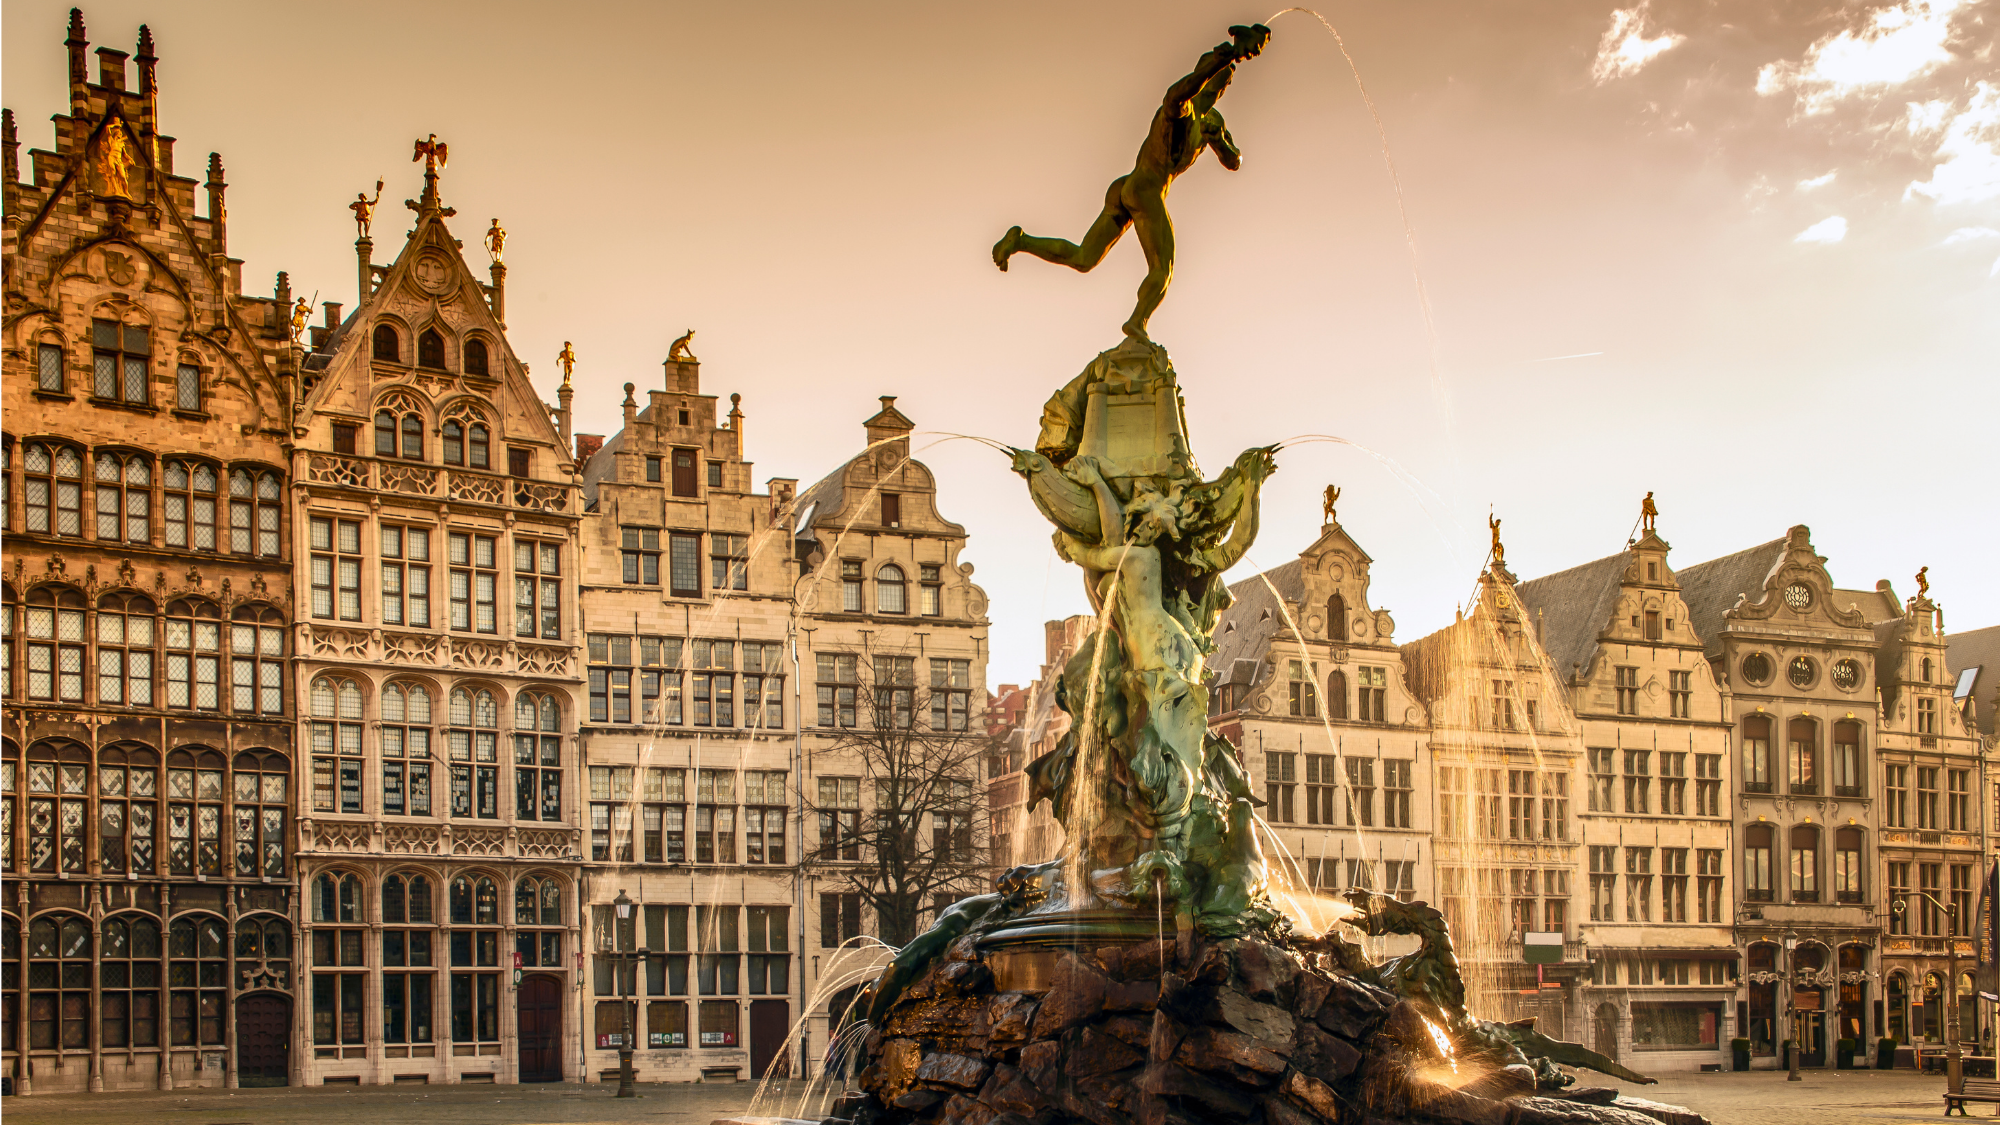 Antwerp outdoor scavenger hunt! Explore the city playing and learning!